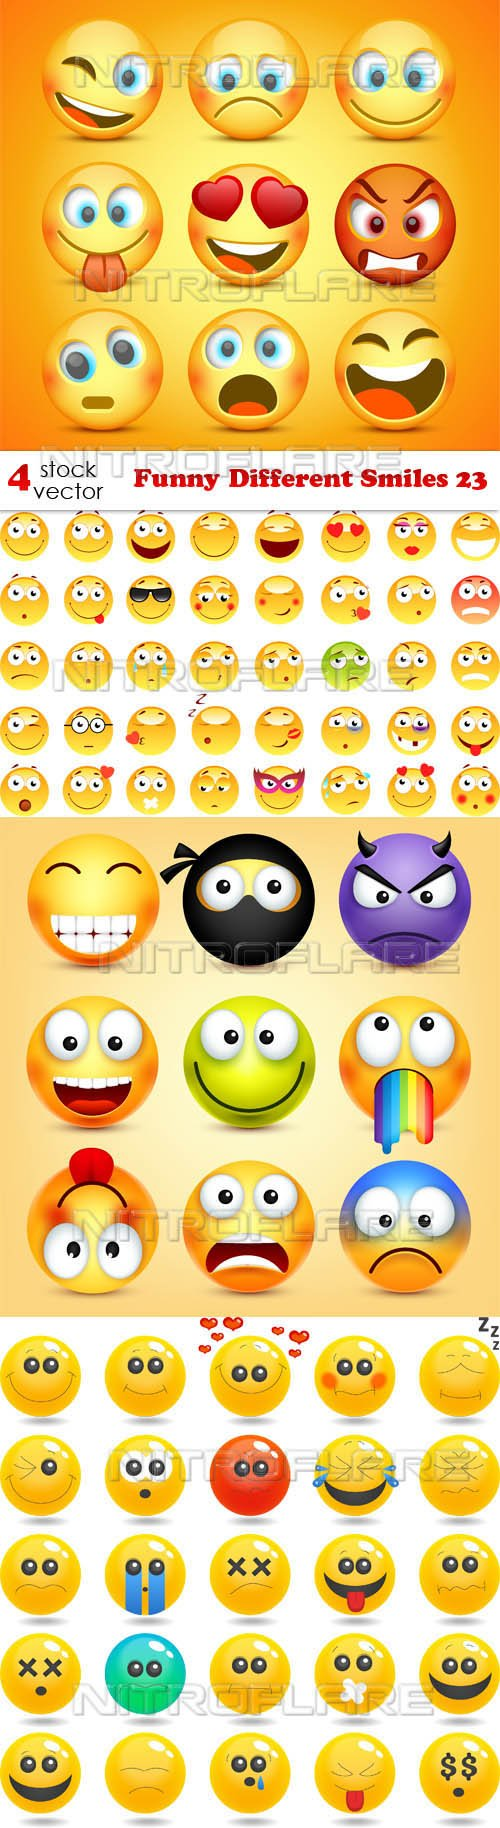 Vectors - Funny Different Smiles 23